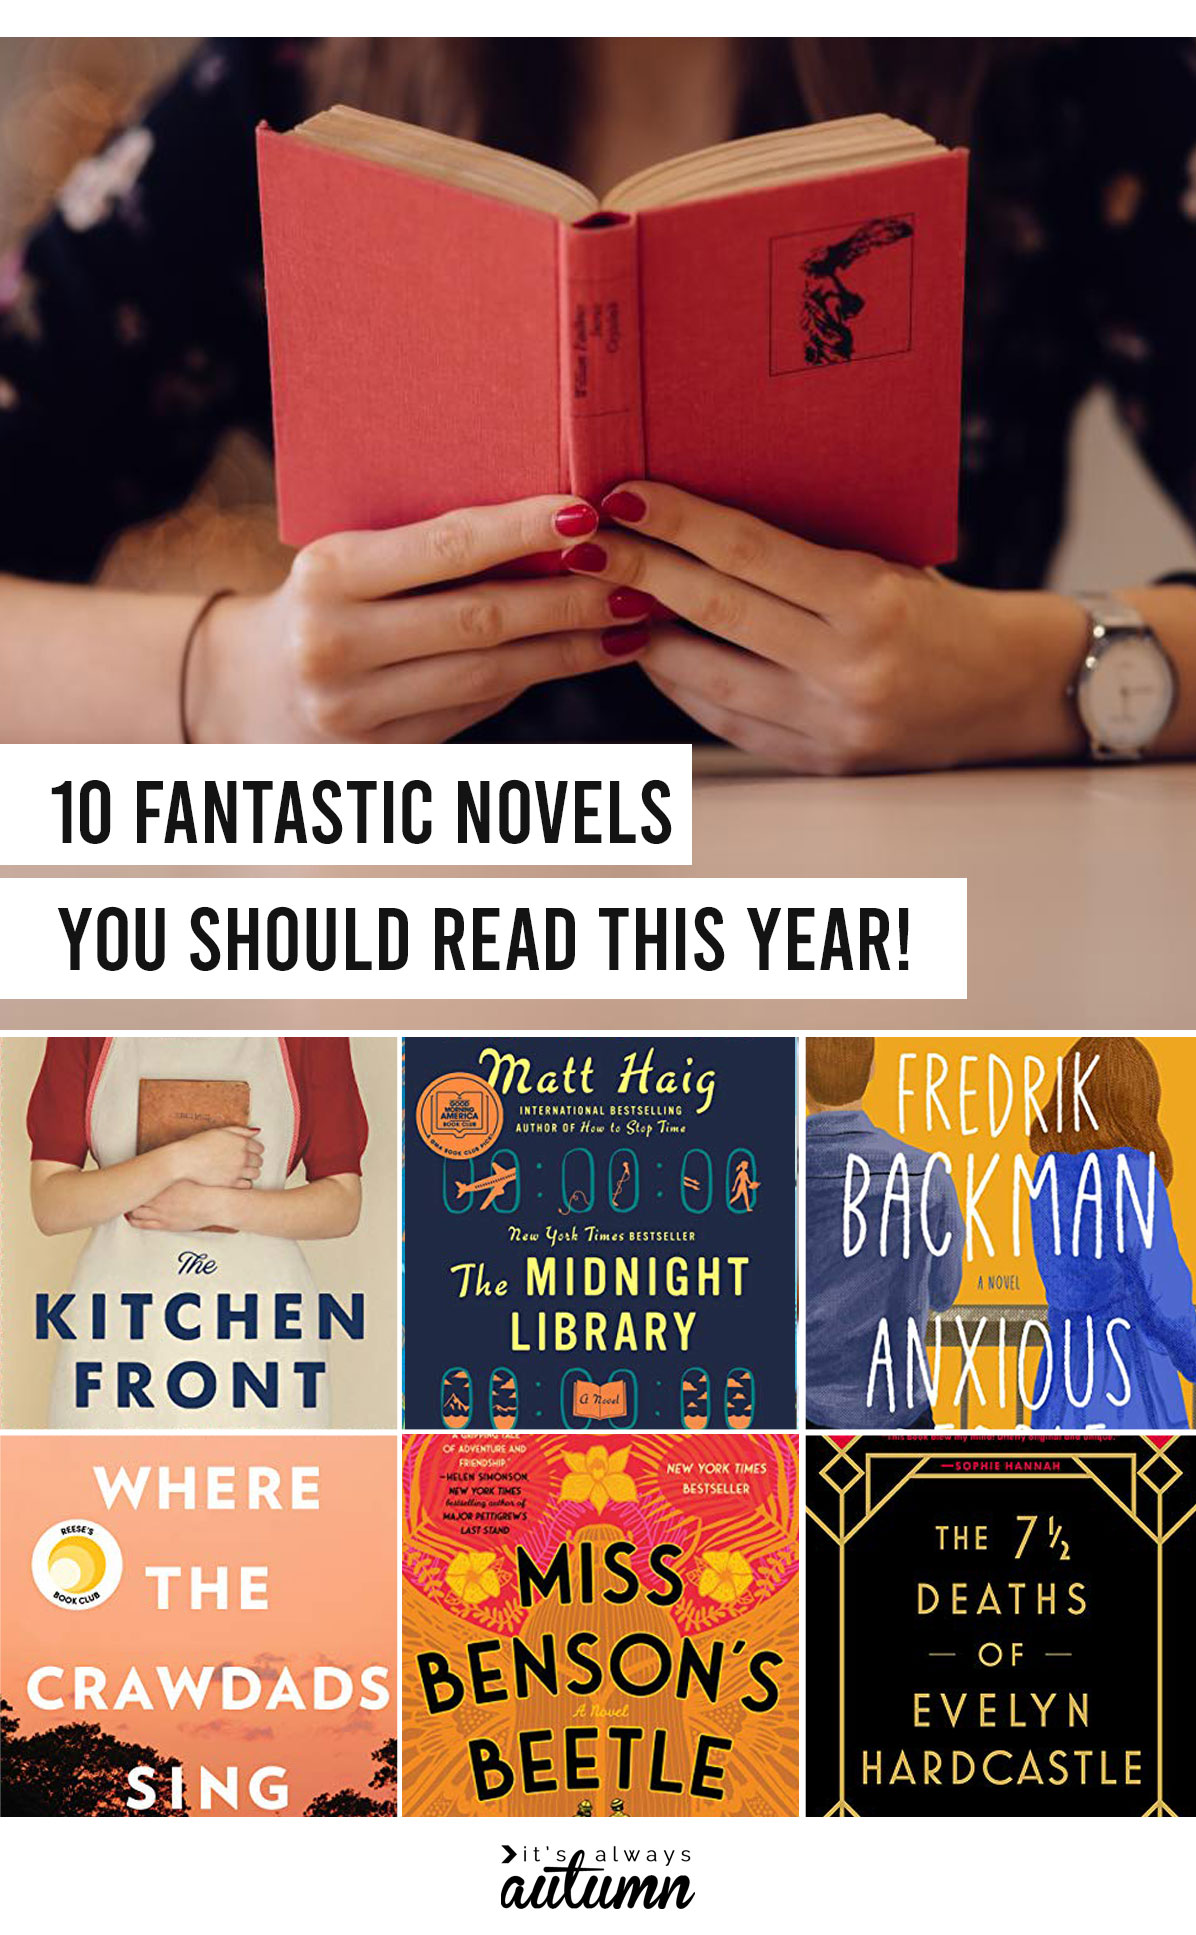 Girl holding a book; words: 10 fantastic novels you should read this year!; Collage of book covers